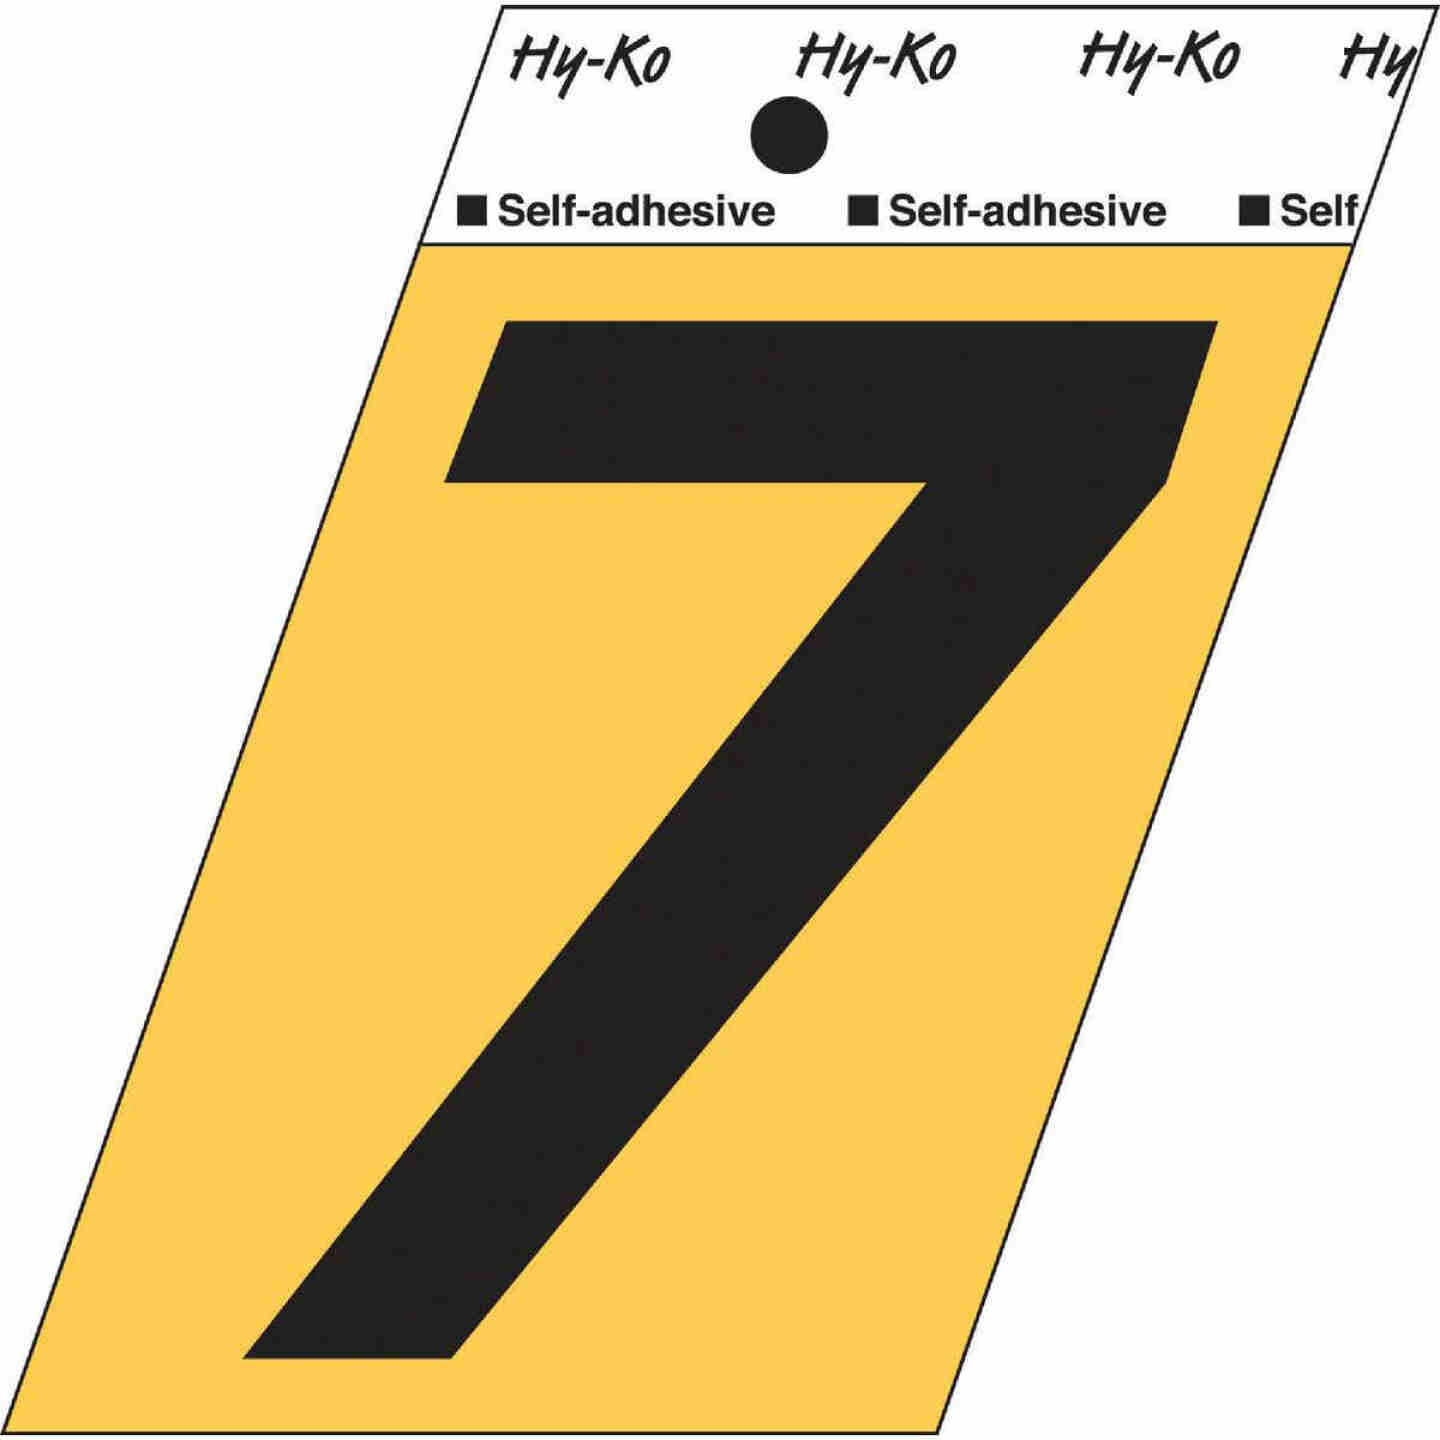 Hy-Ko Aluminum 3-1/2 In. Non-Reflective Adhesive Number Seven Image 1